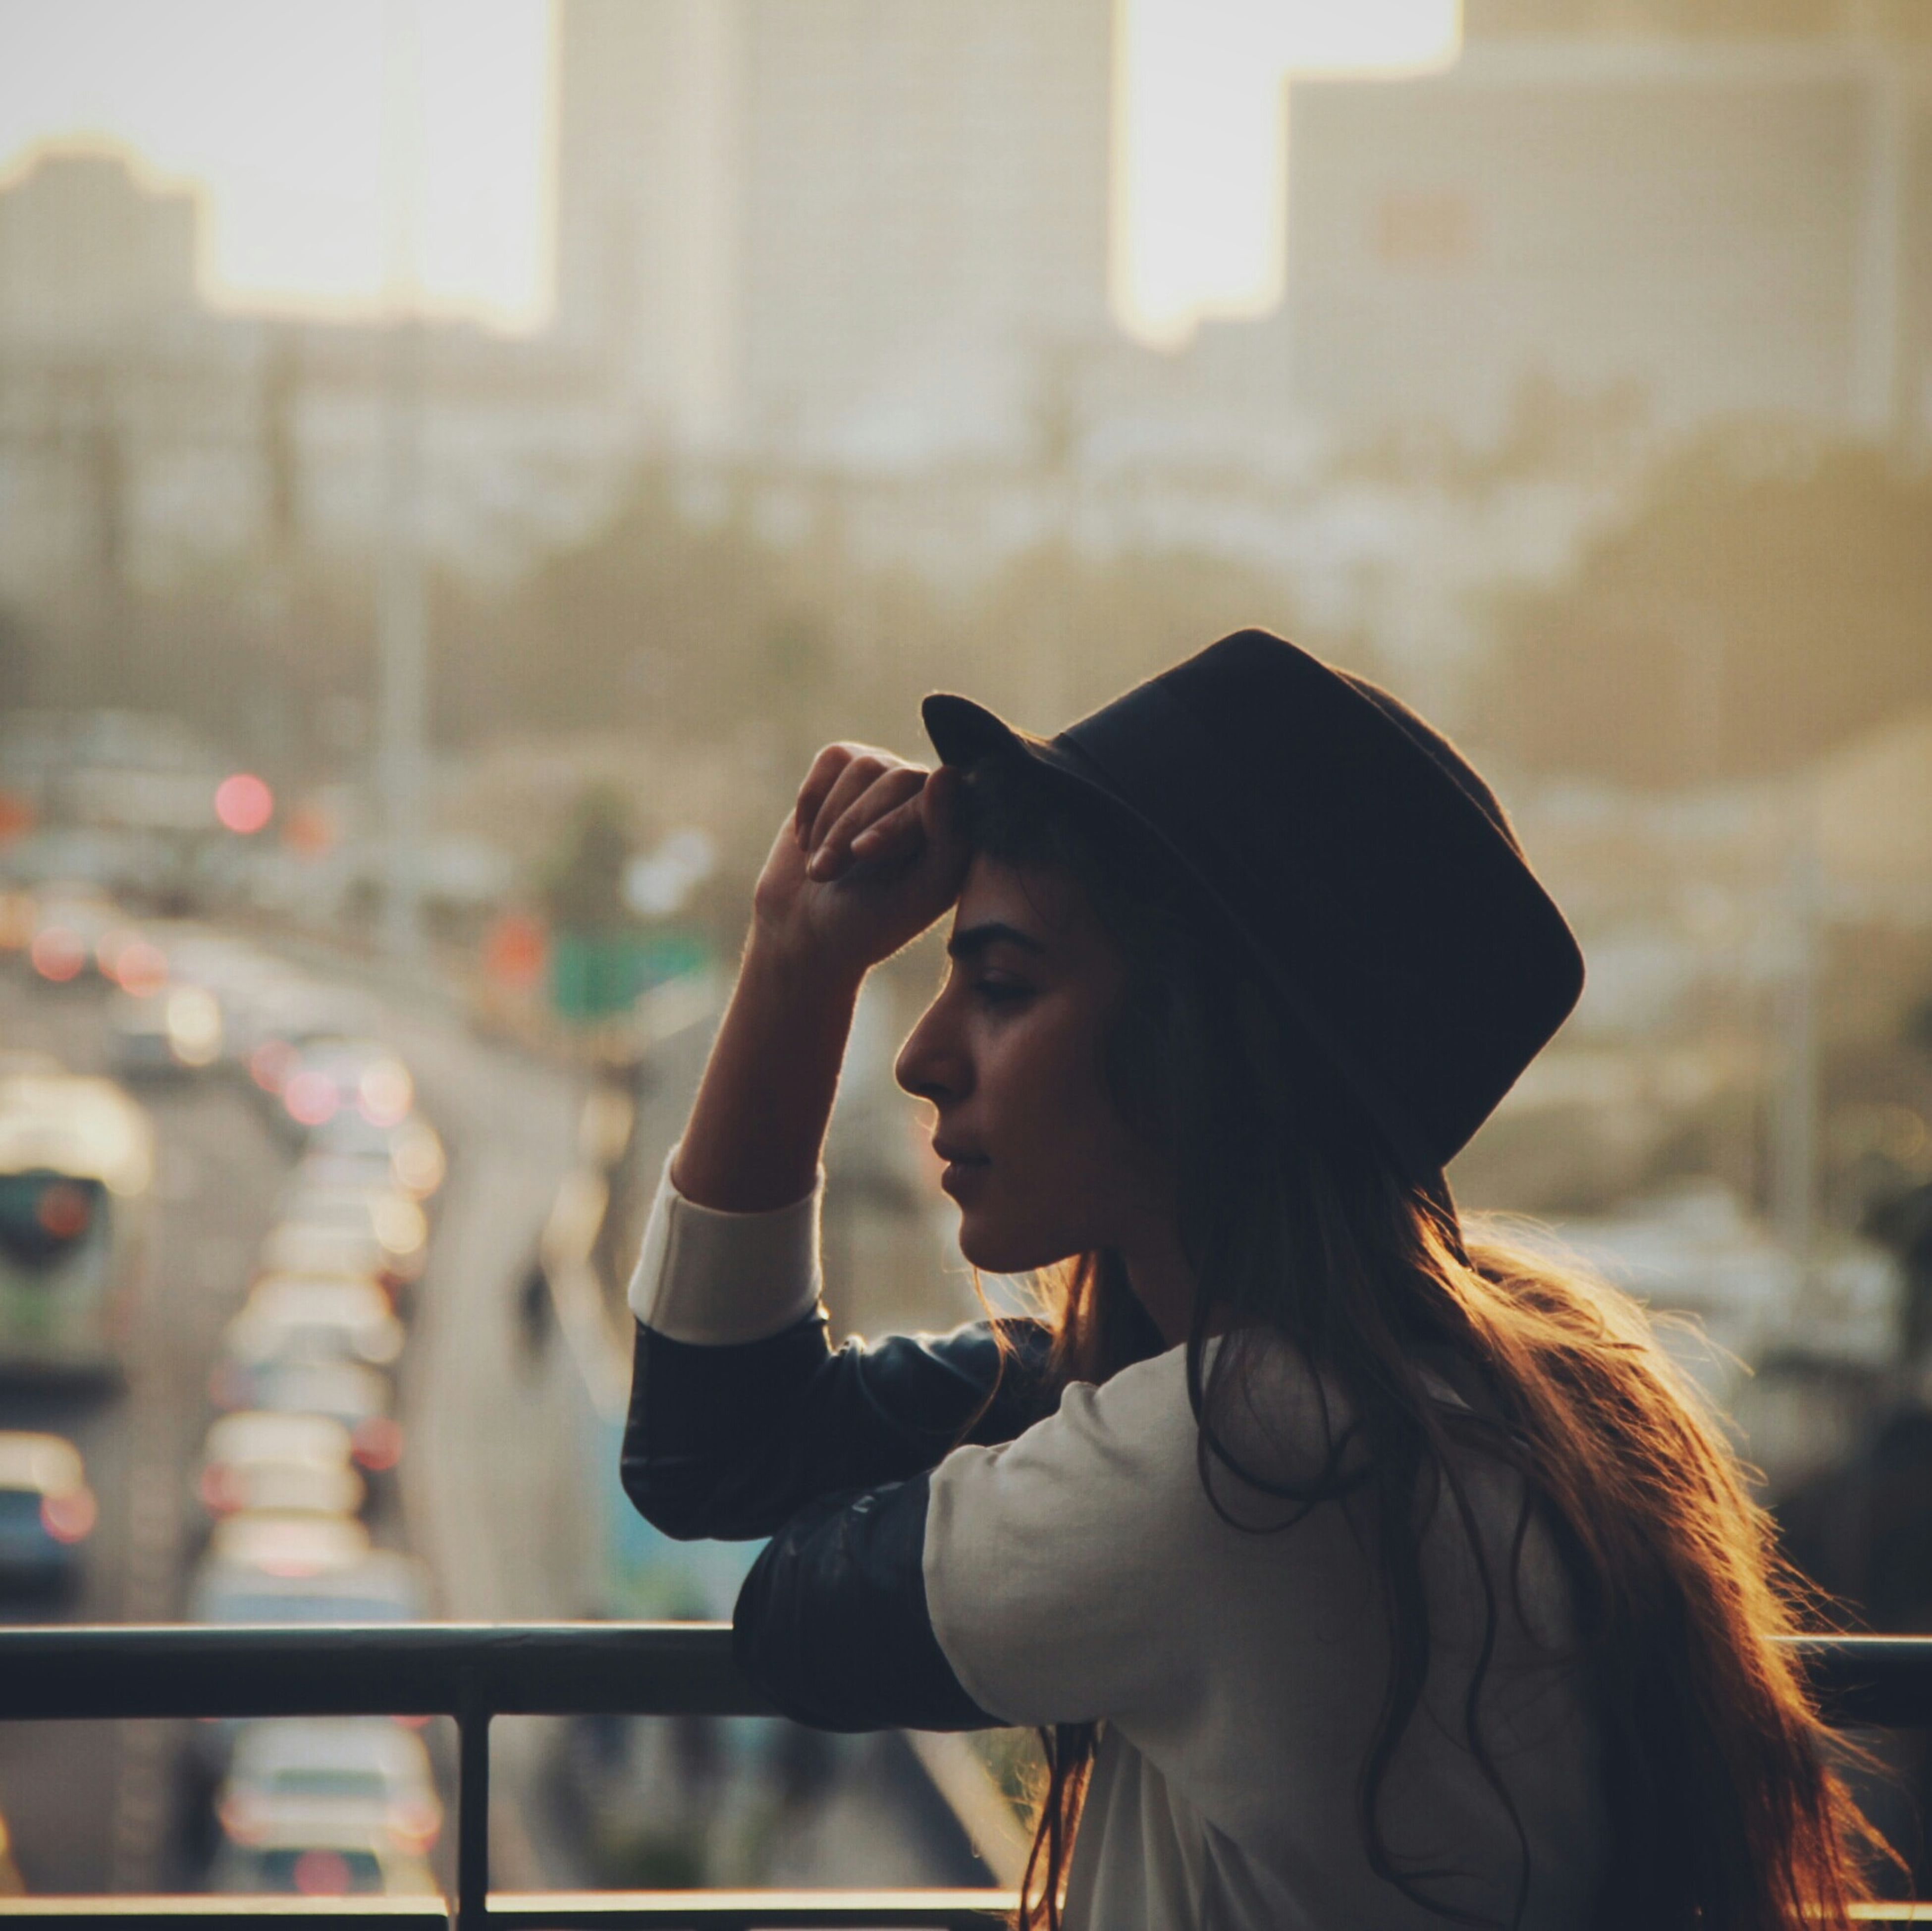 focus on foreground, lifestyles, headshot, waist up, leisure activity, young adult, holding, person, casual clothing, head and shoulders, looking away, side view, three quarter length, young women, rear view, sitting, long hair, photography themes